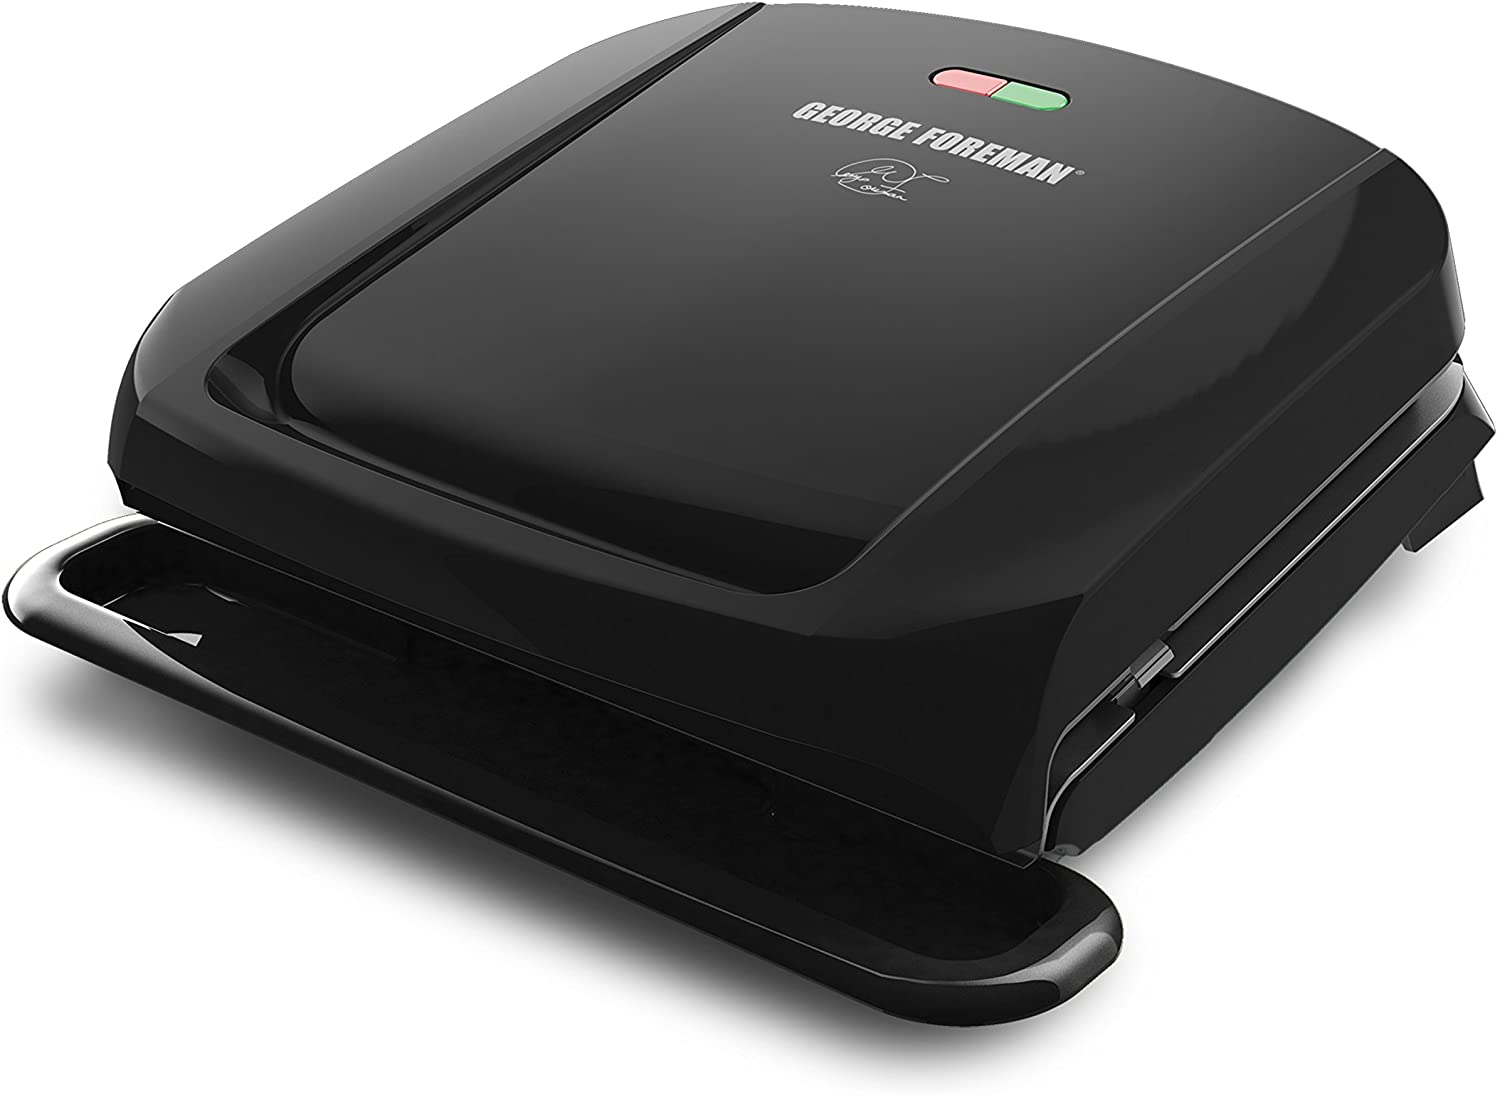 George Foreman 4-Serving Grill And Panini Press